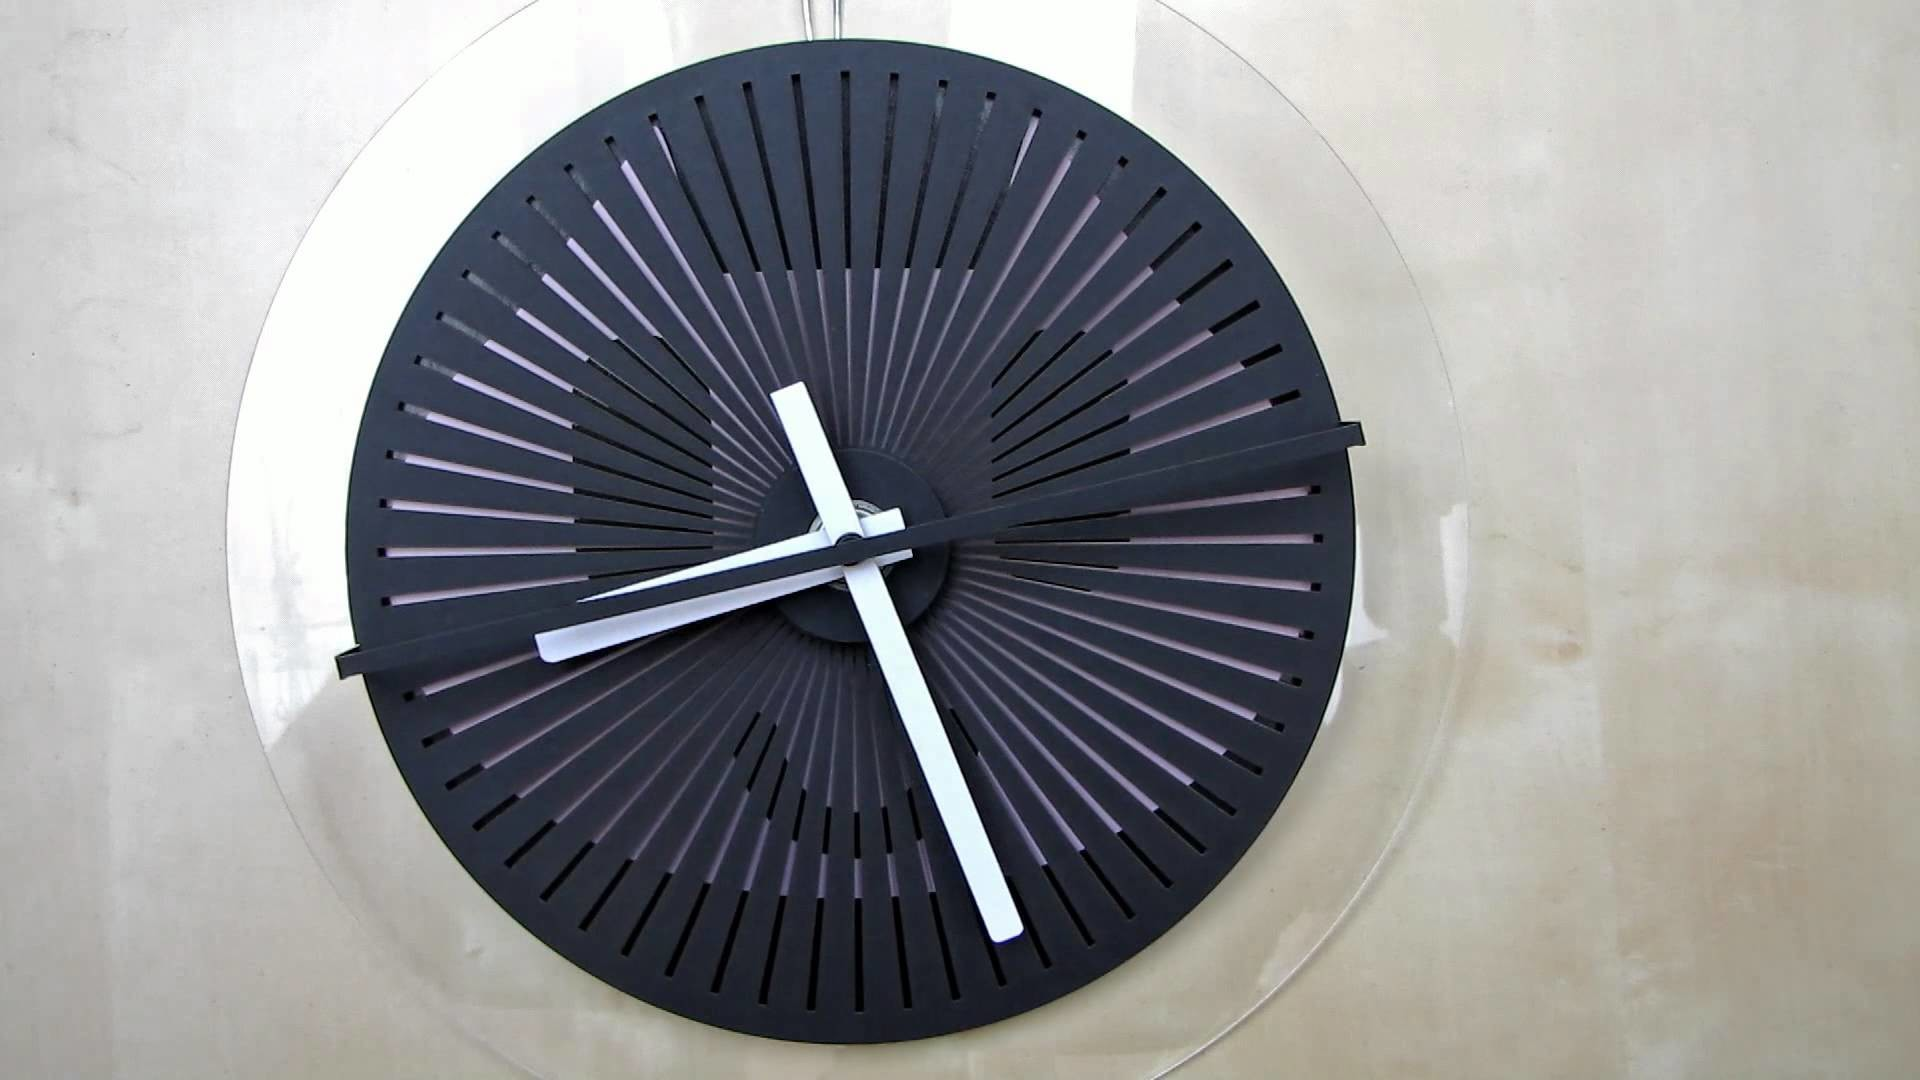 Moire seconds prototype  - optical illusion wallclock